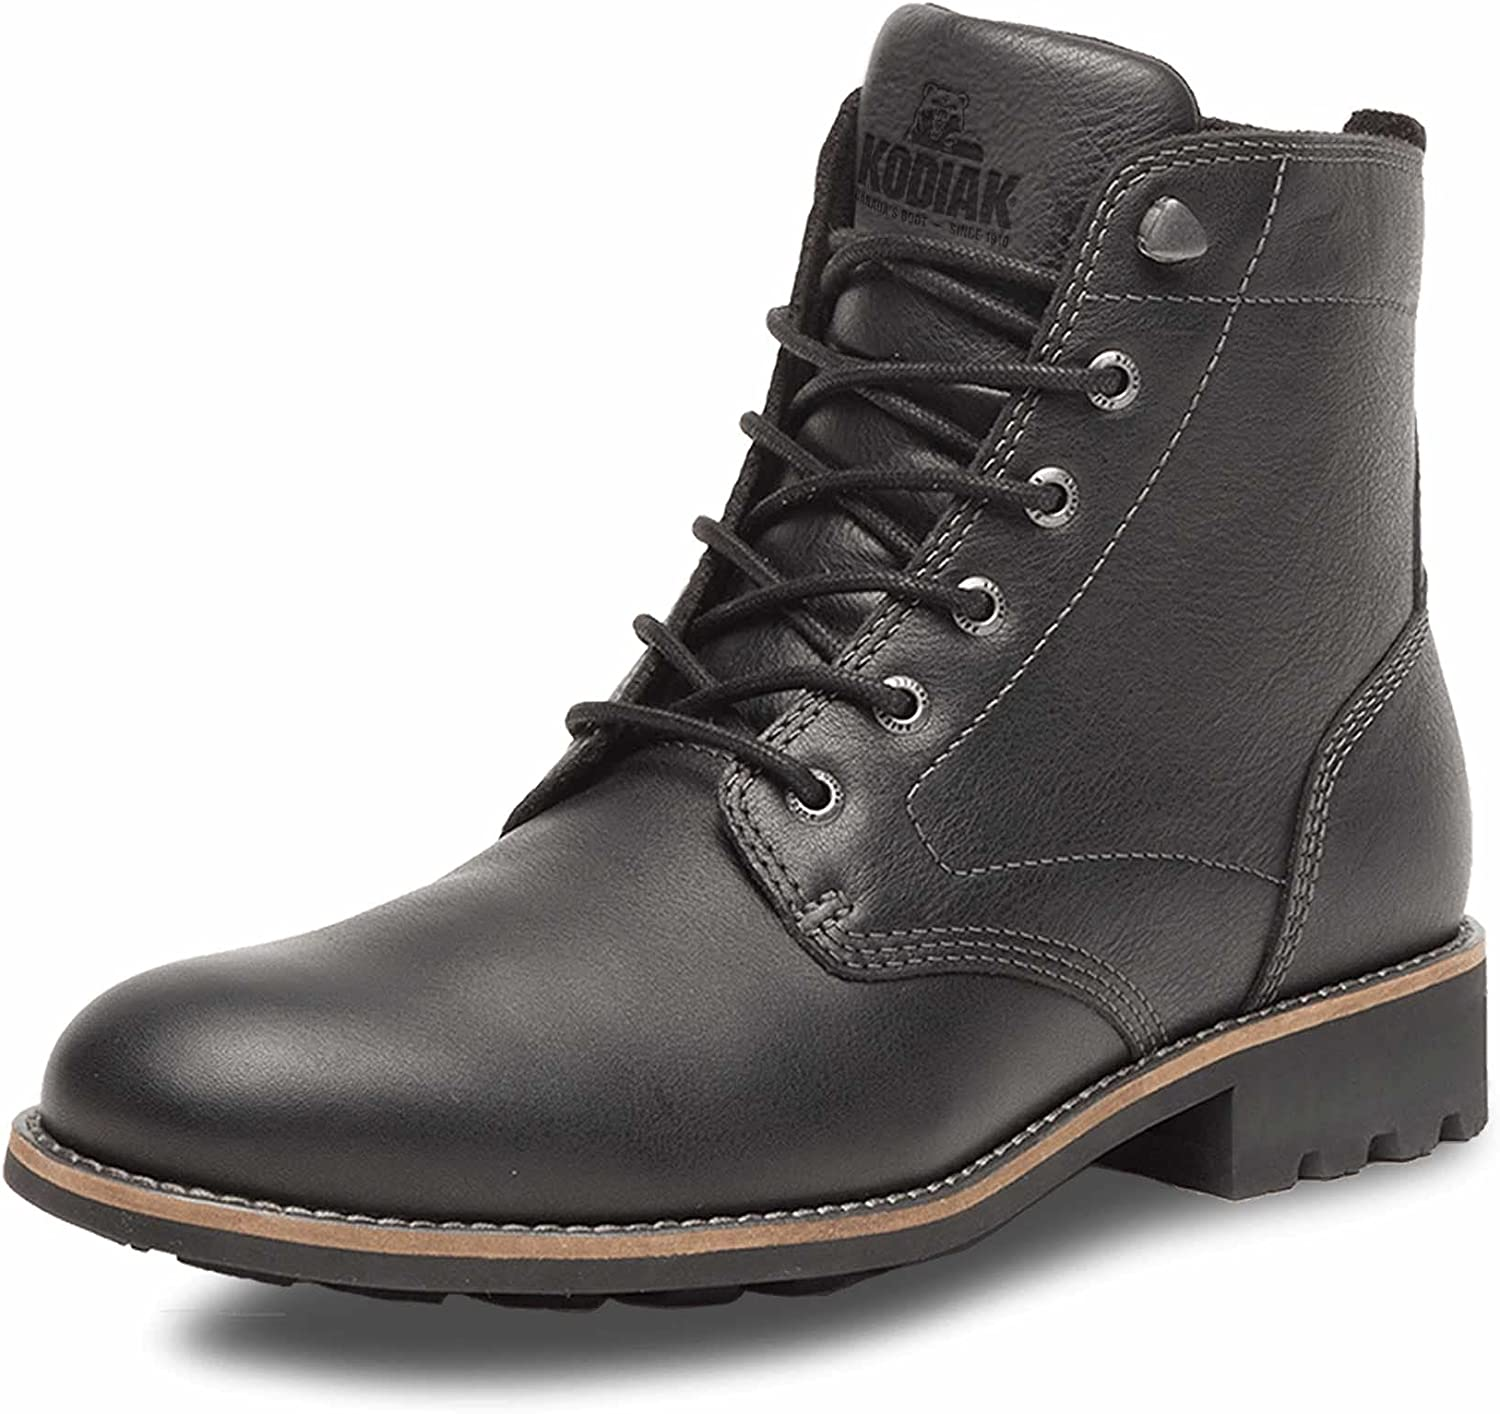 Kodiak Men's 6-inch Boot Clayburn Ankle security Special price